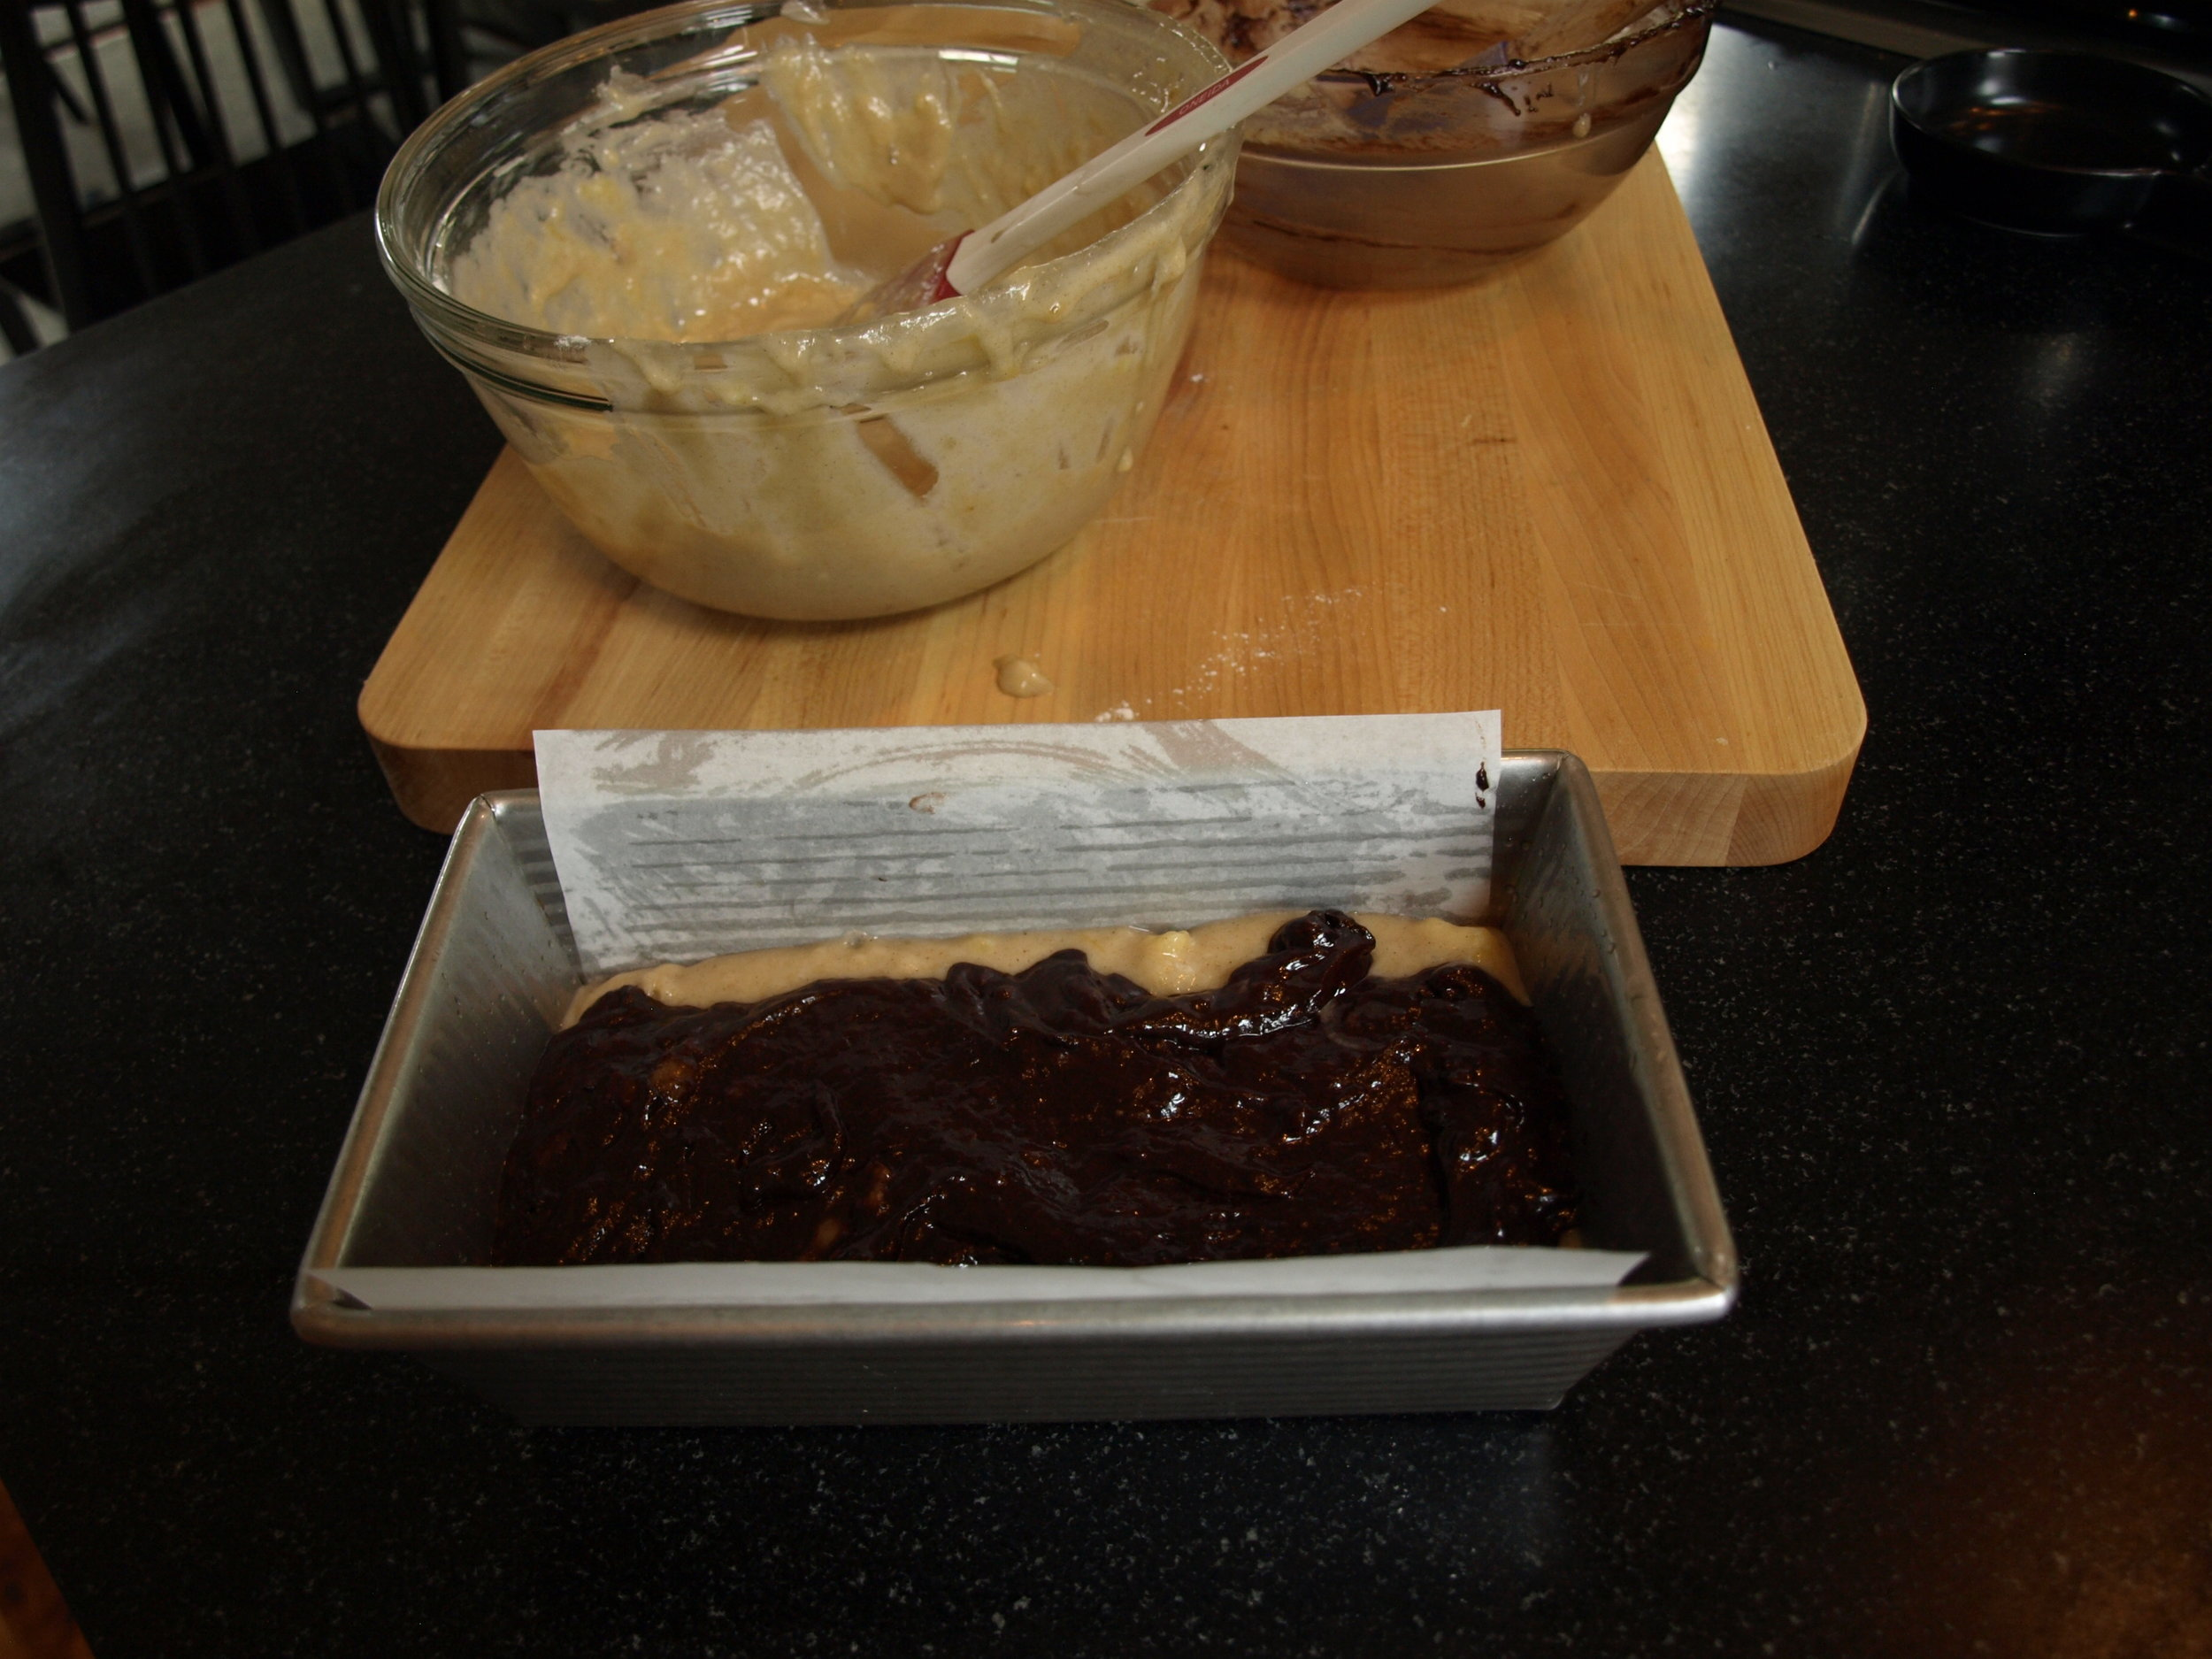 Layer 1/2 banana batter followed by chocolate batter.